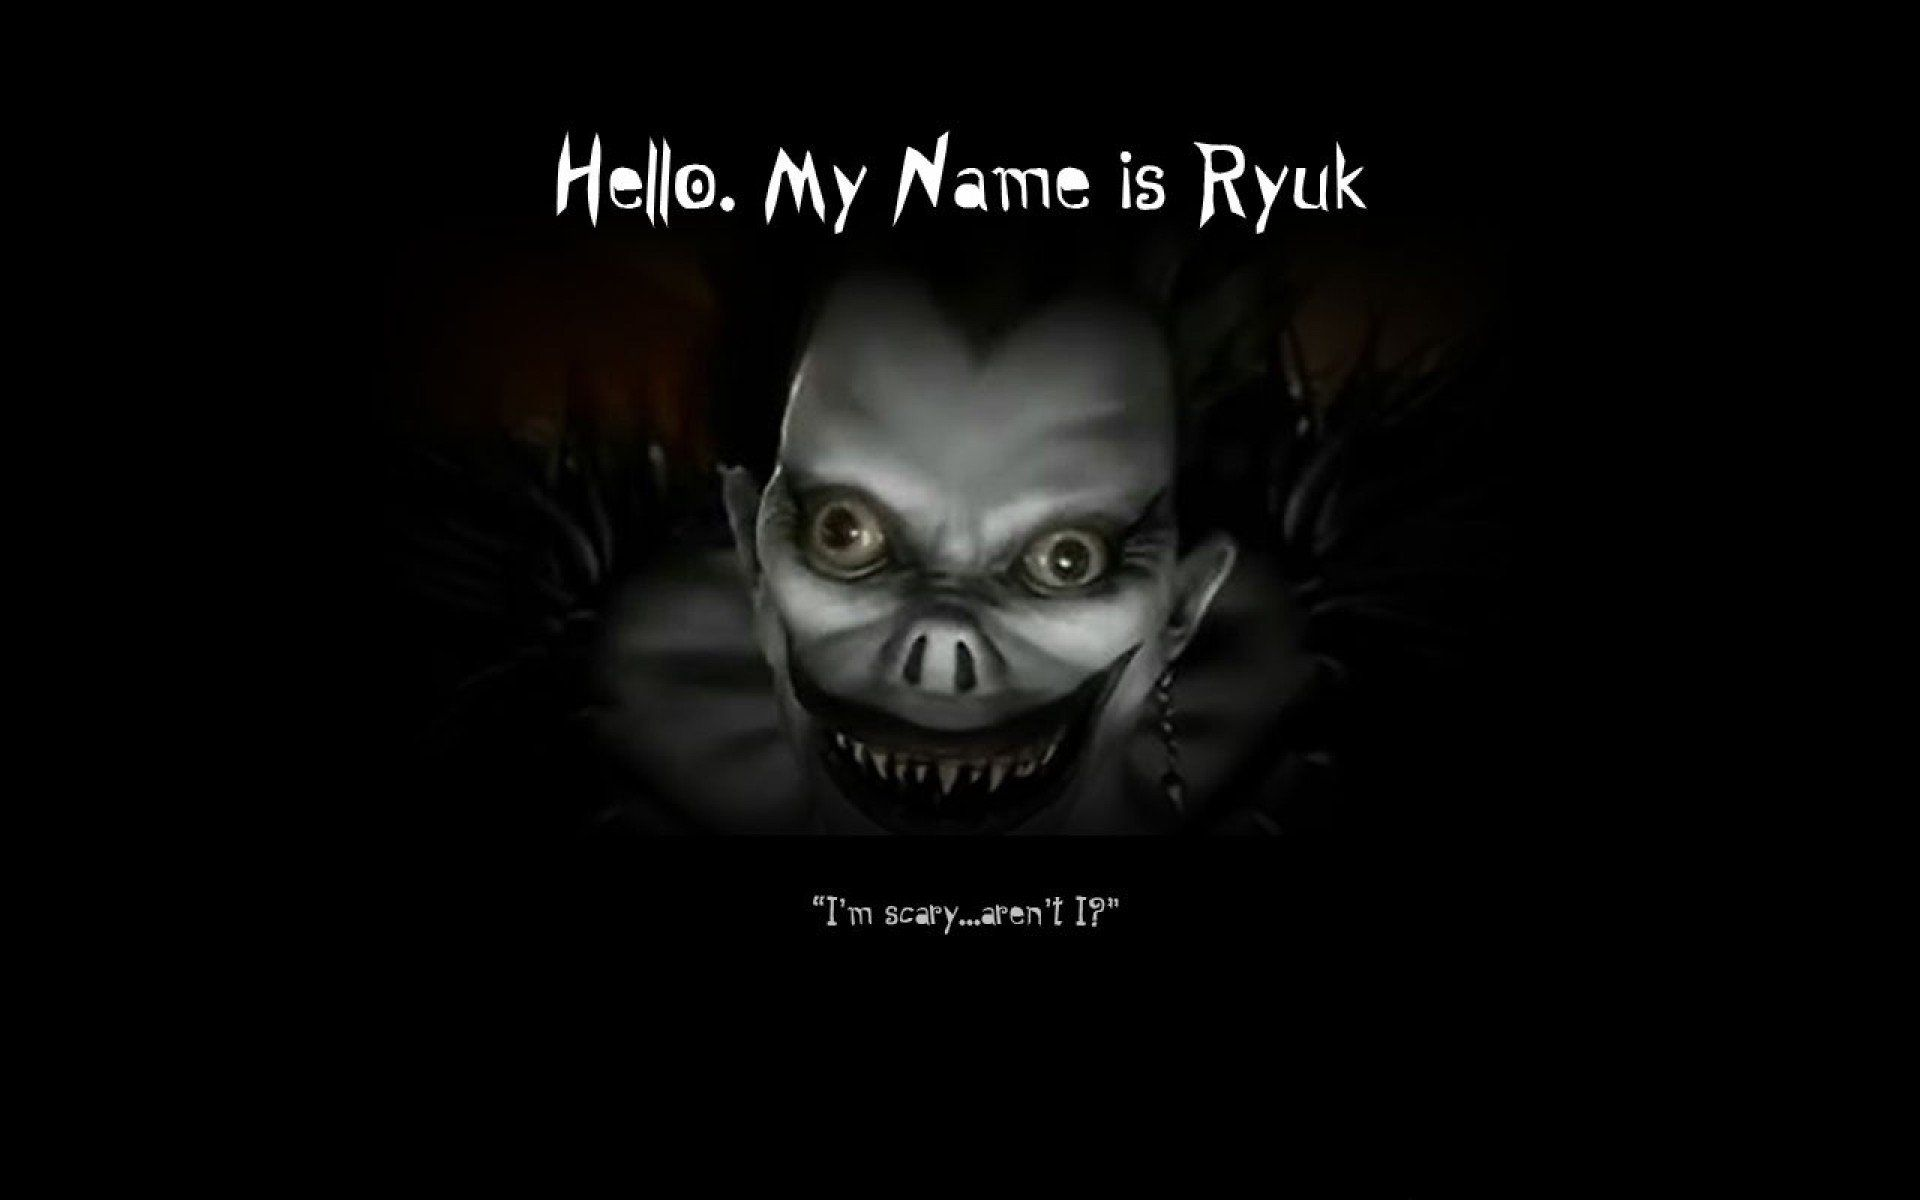 Ryuk wallpaper zerochan anime image board wallpapers and